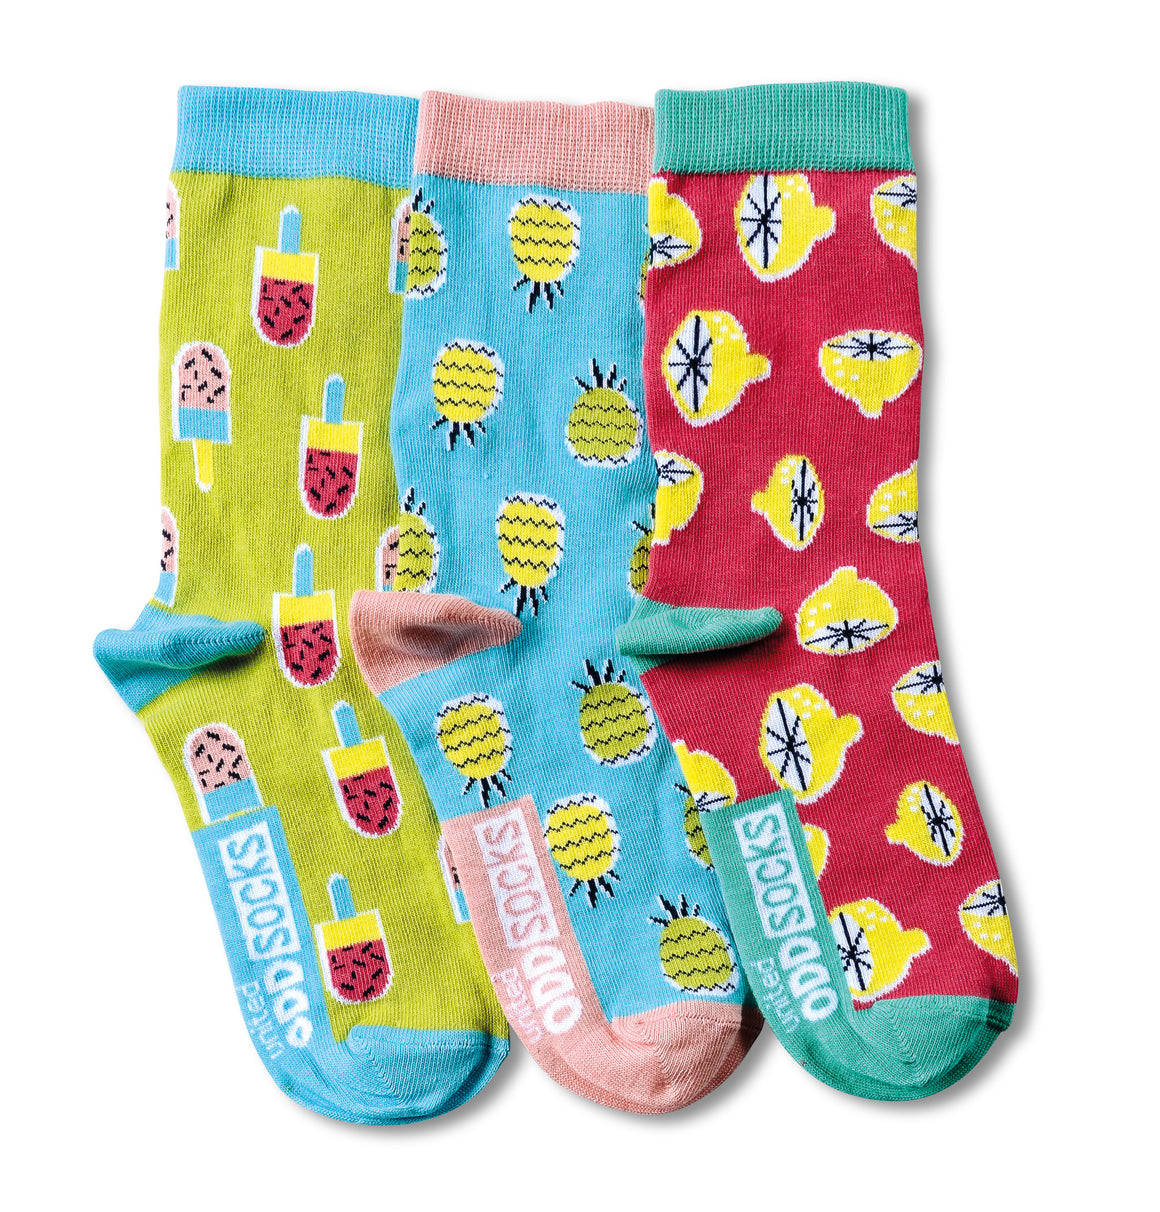 United Odd Socks Kitschy Girls 3 Pack - The Love Trees